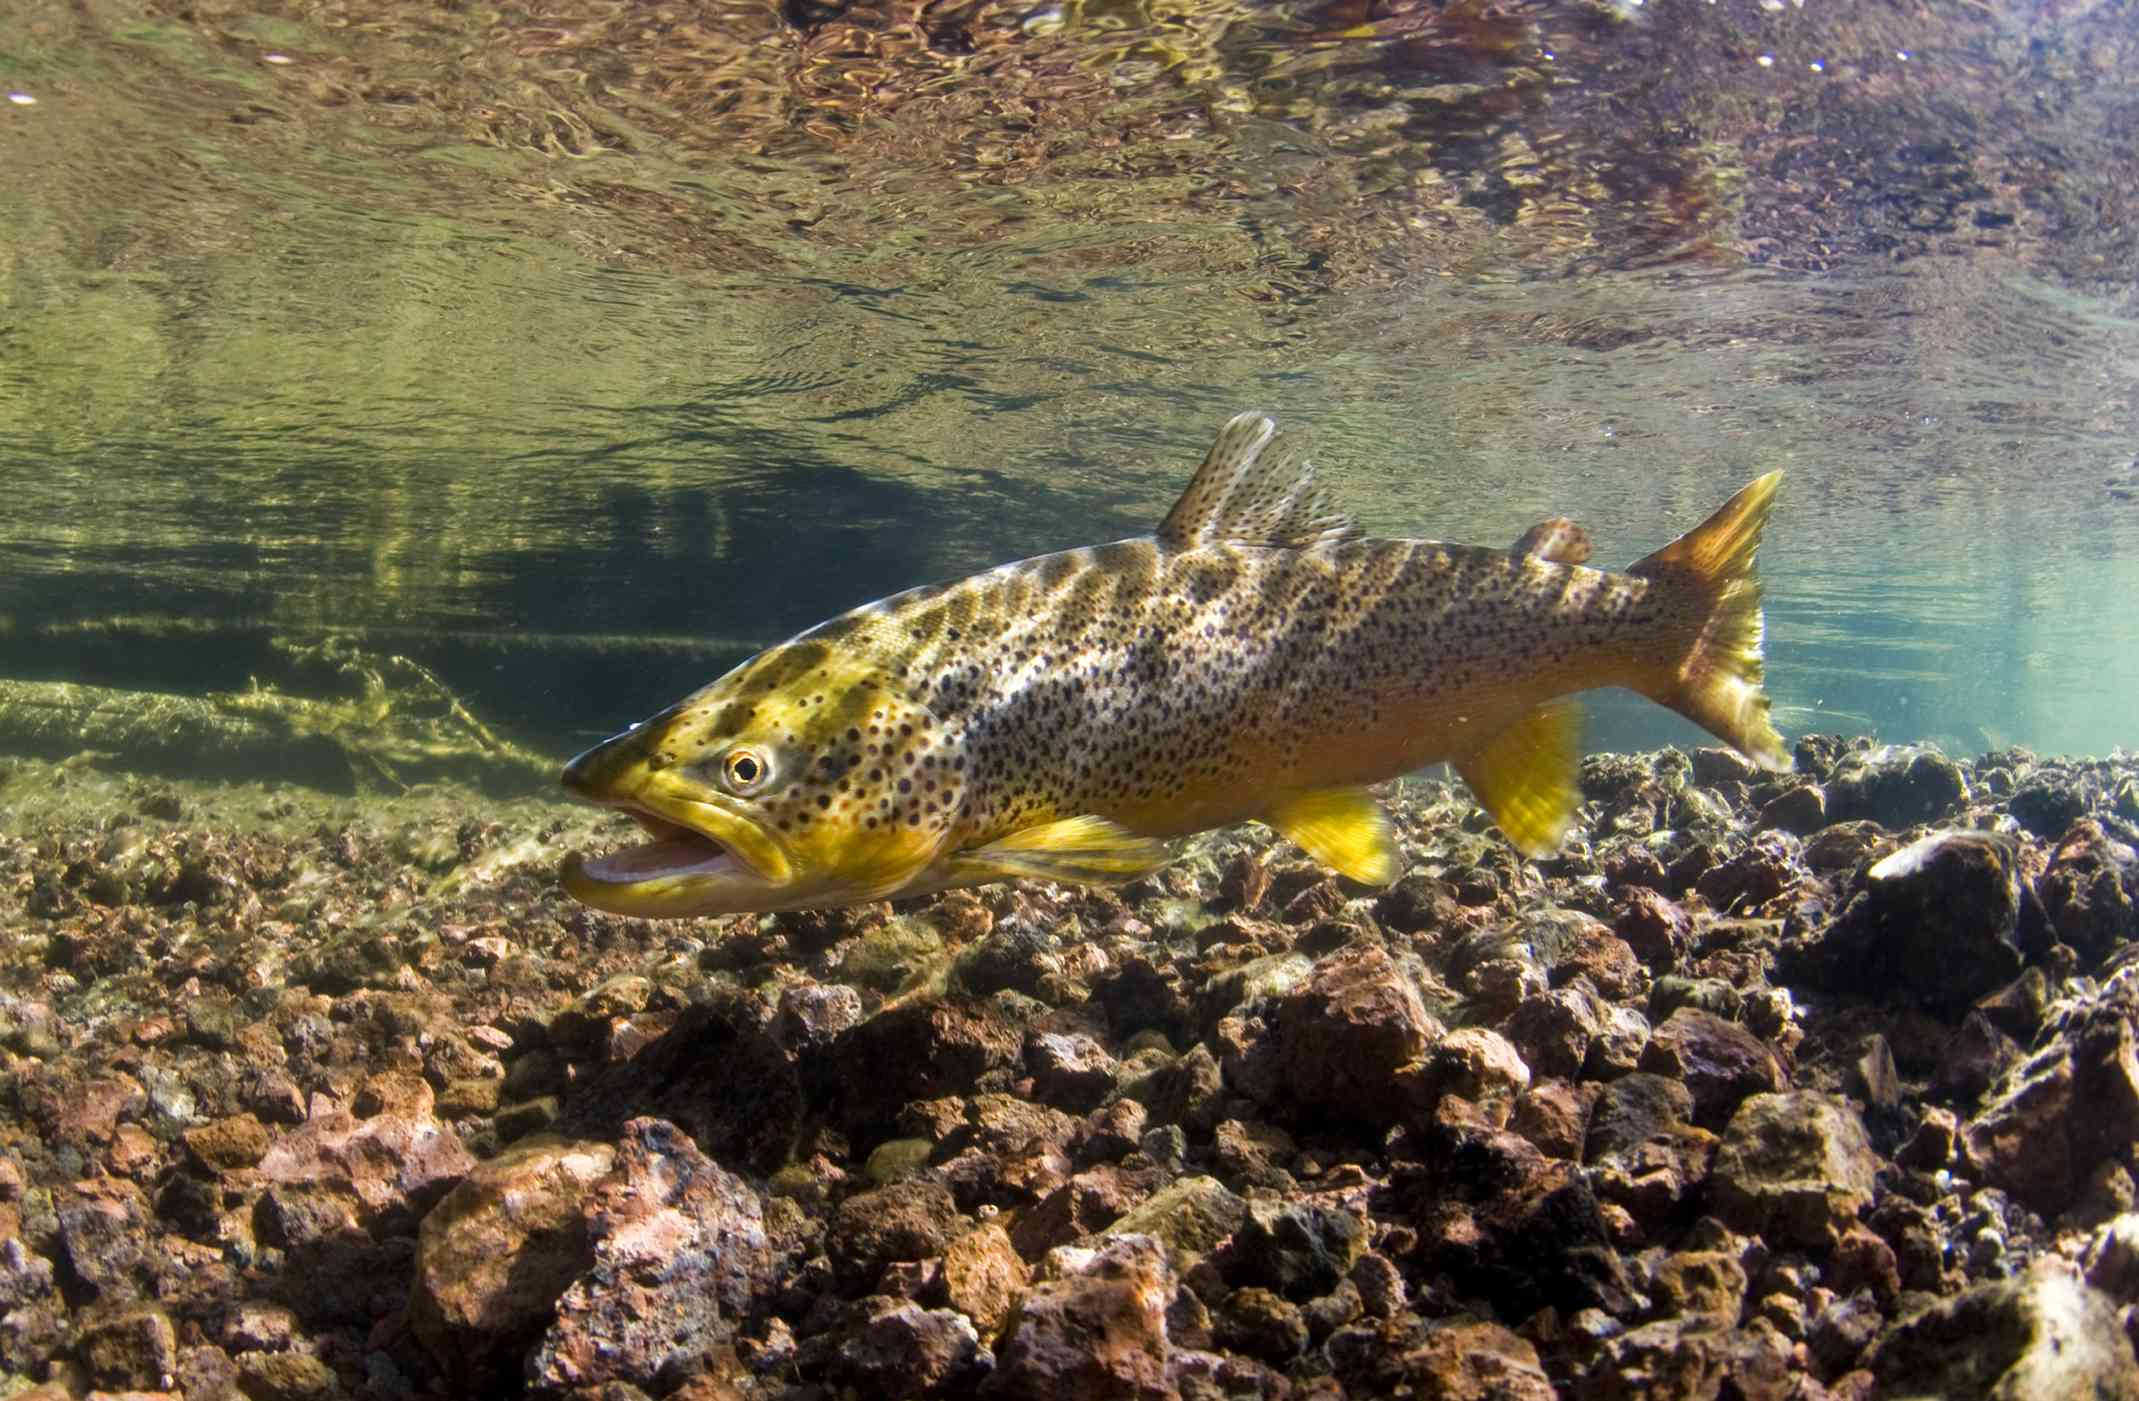 a spawning brown trout in shallow water with rocks below